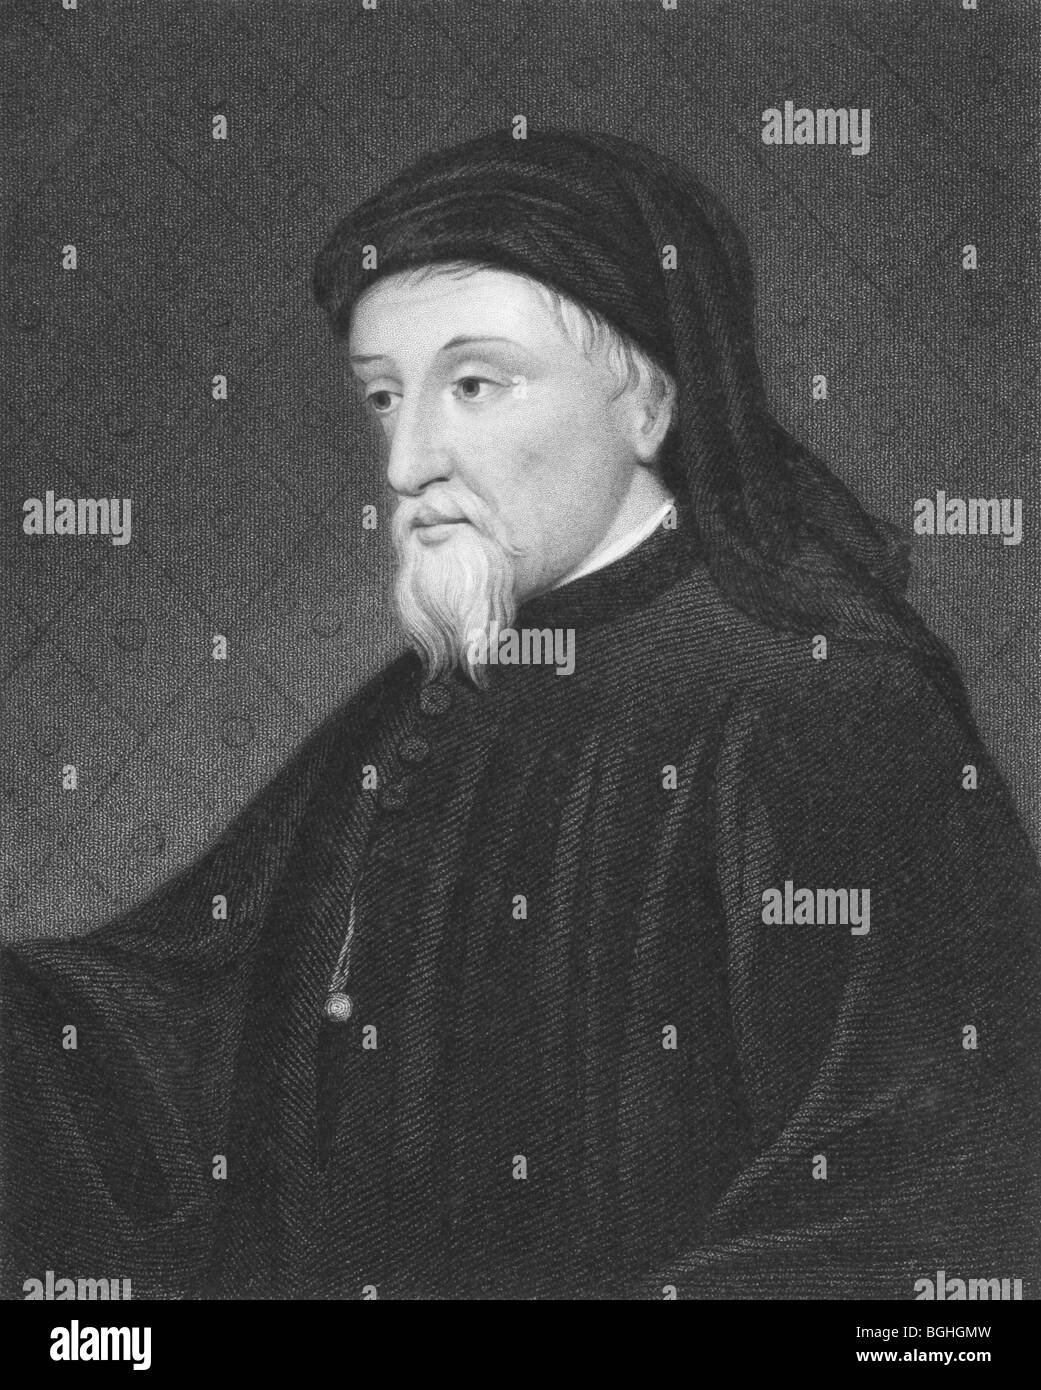 Geoffrey Chaucer on engraving from the 1850s. English author, poet, philosopher, bureaucrat, courtier and diplomat. - Stock Image